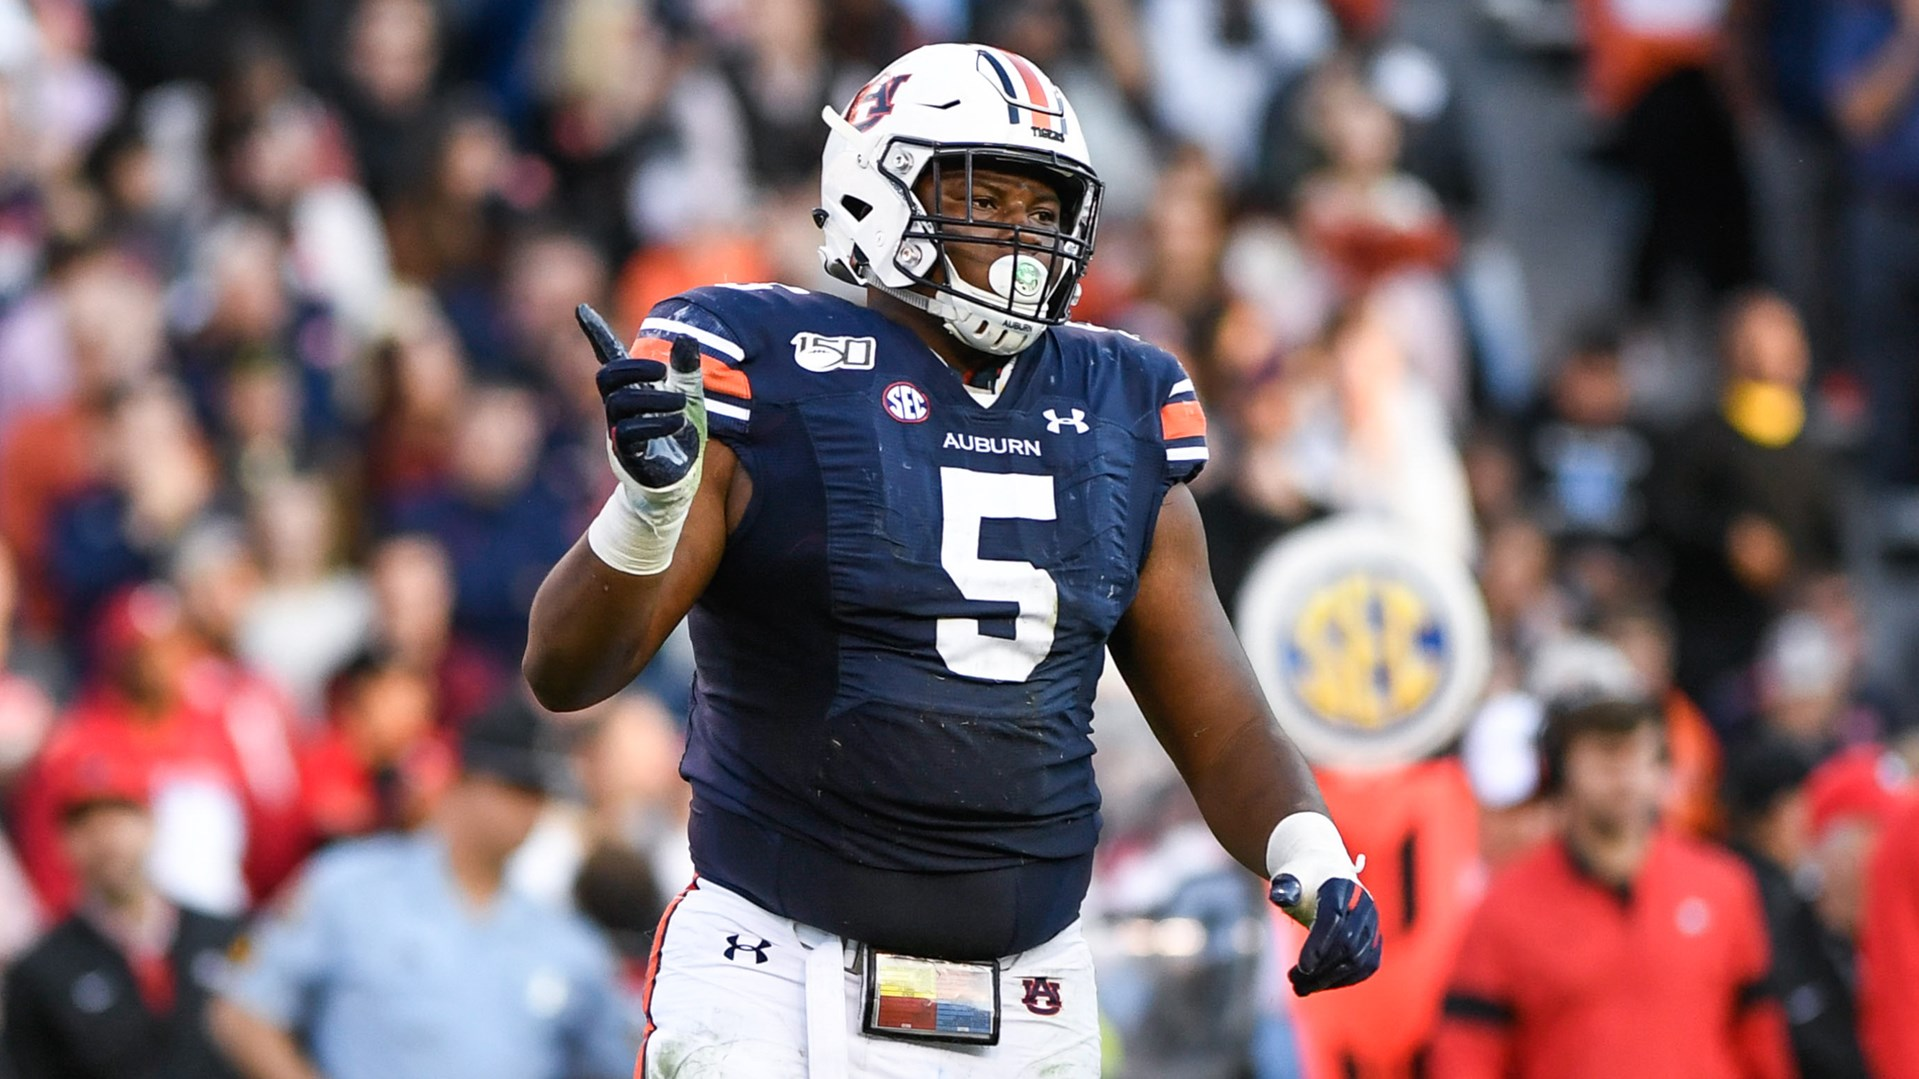 Auburn's Derrick Brown contends for Outland, Nagurski trophies ...